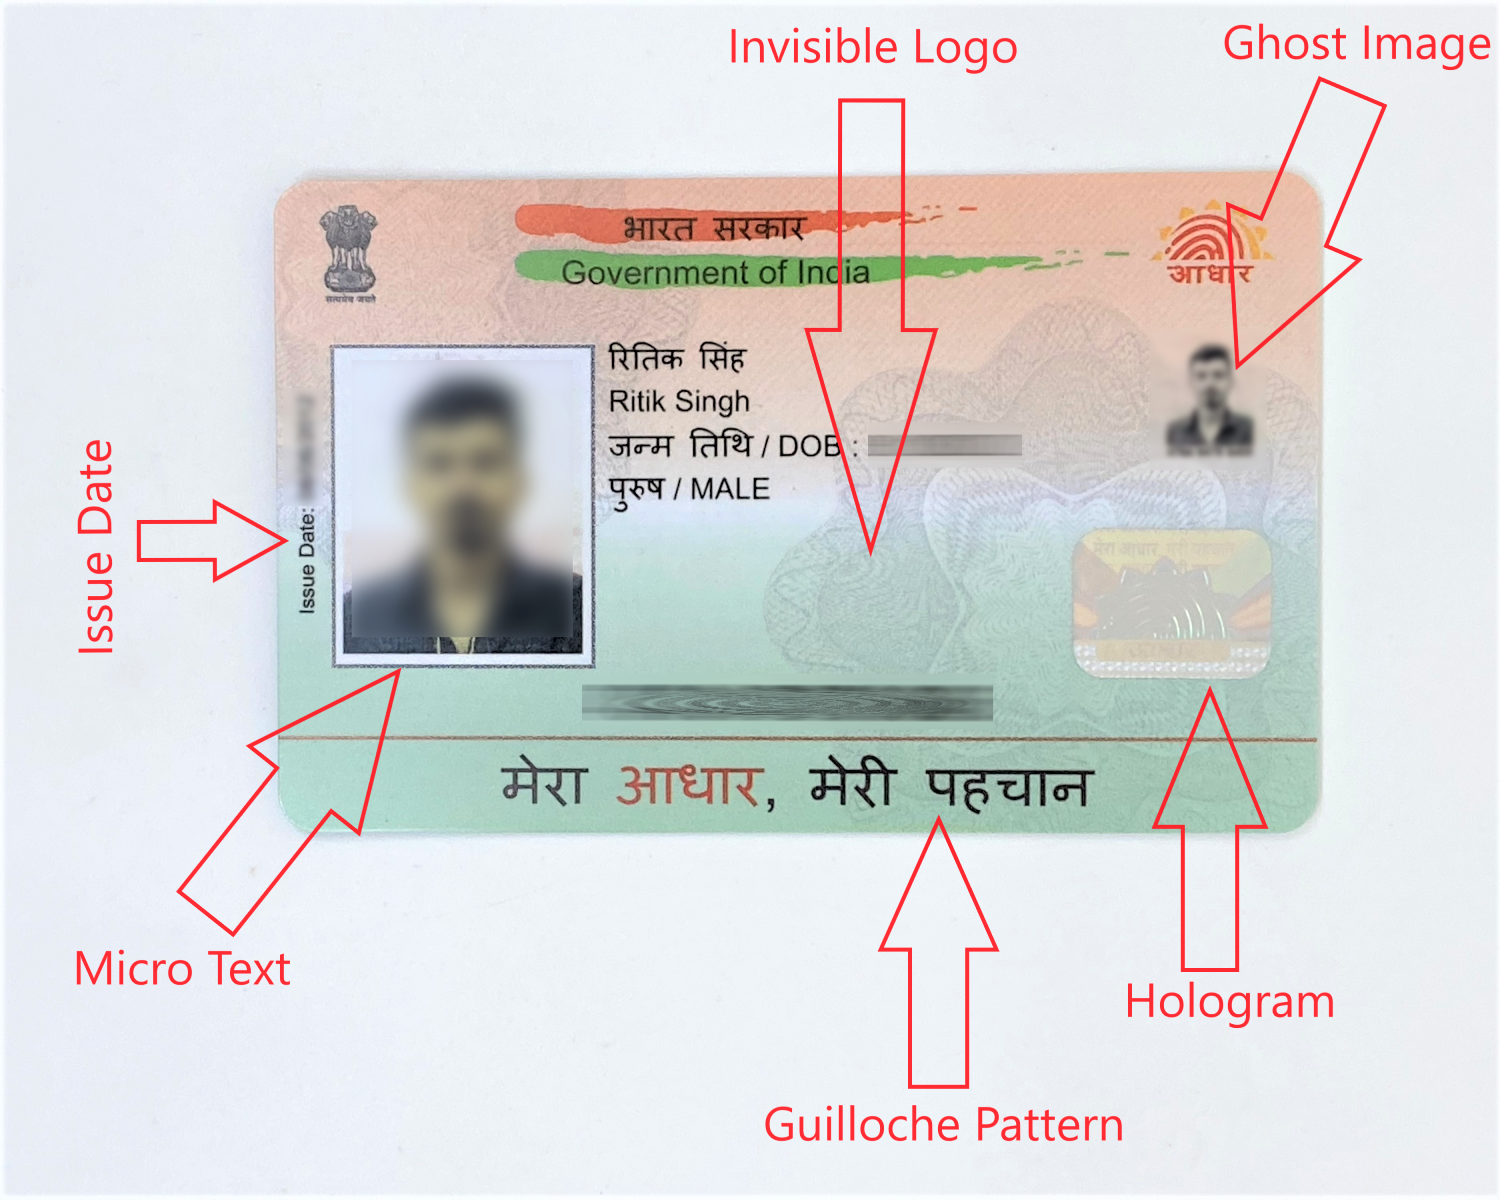 PVC Aadhaar Card vs Regular Aadhaar Security Features